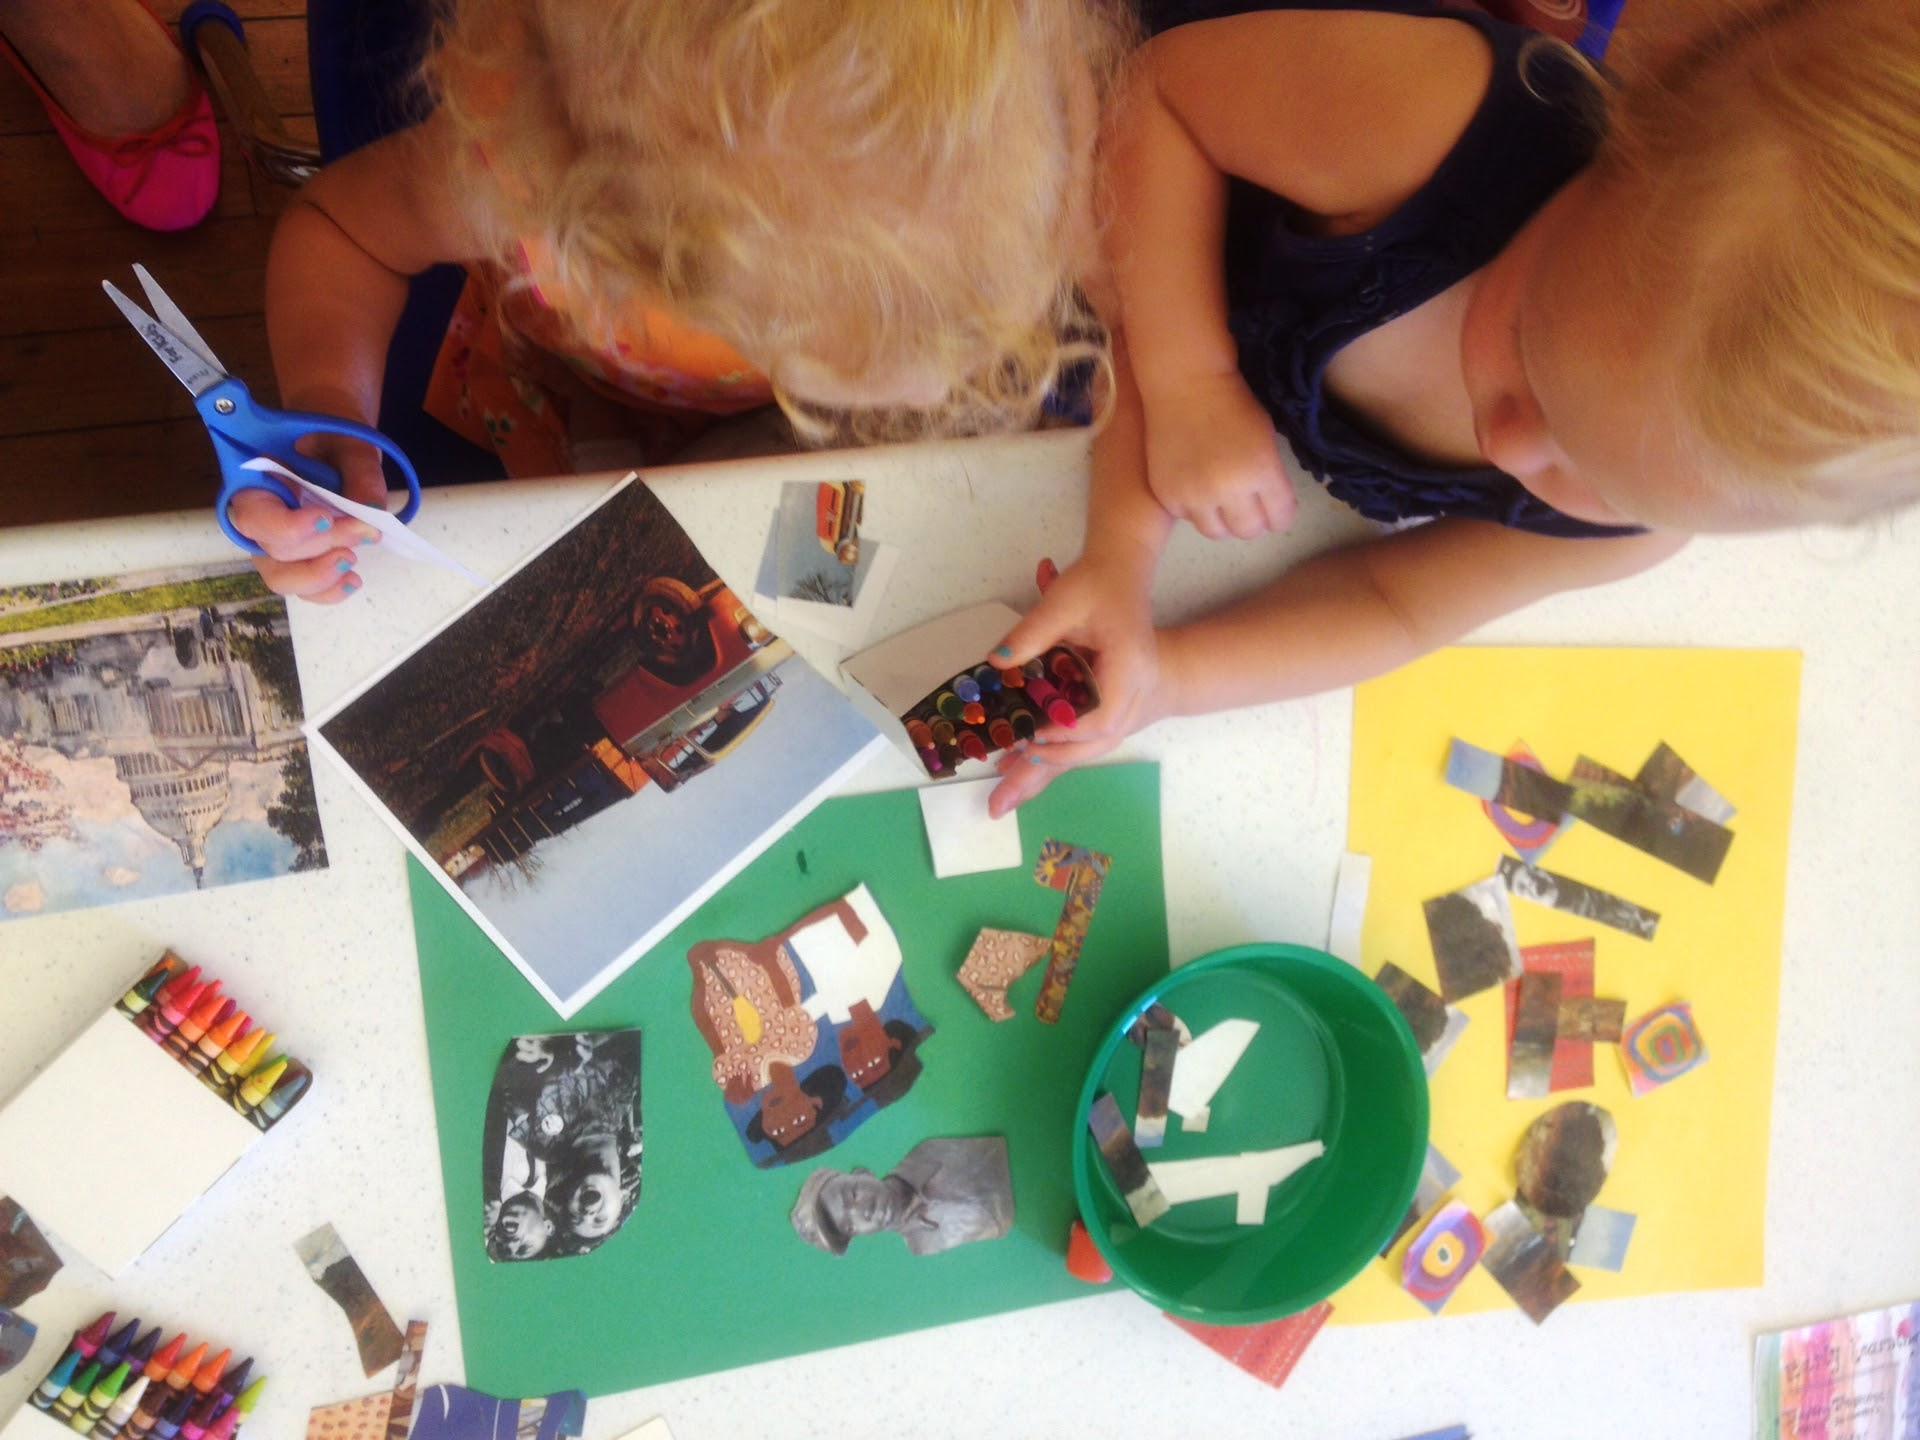 Two children cutting out images and placing on construction paper